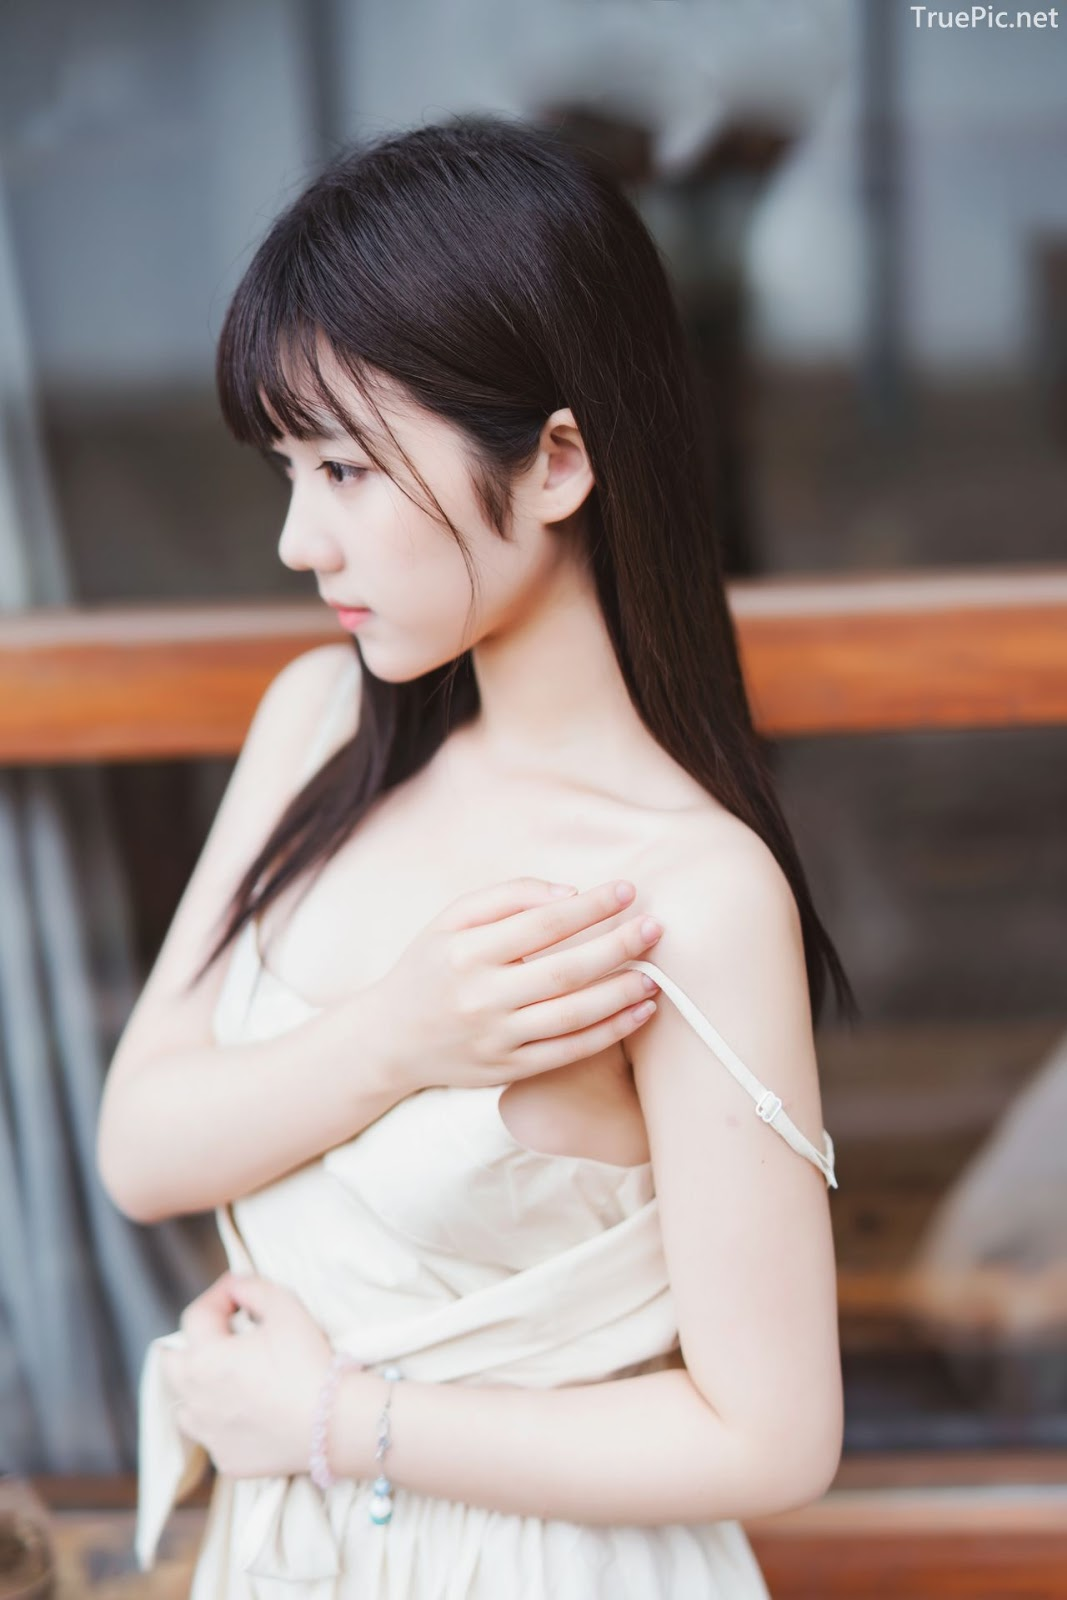 [MTCos] 喵糖映画 Vol.005 – Young Chinese model gentle hot under dressing sexy - Picture 20